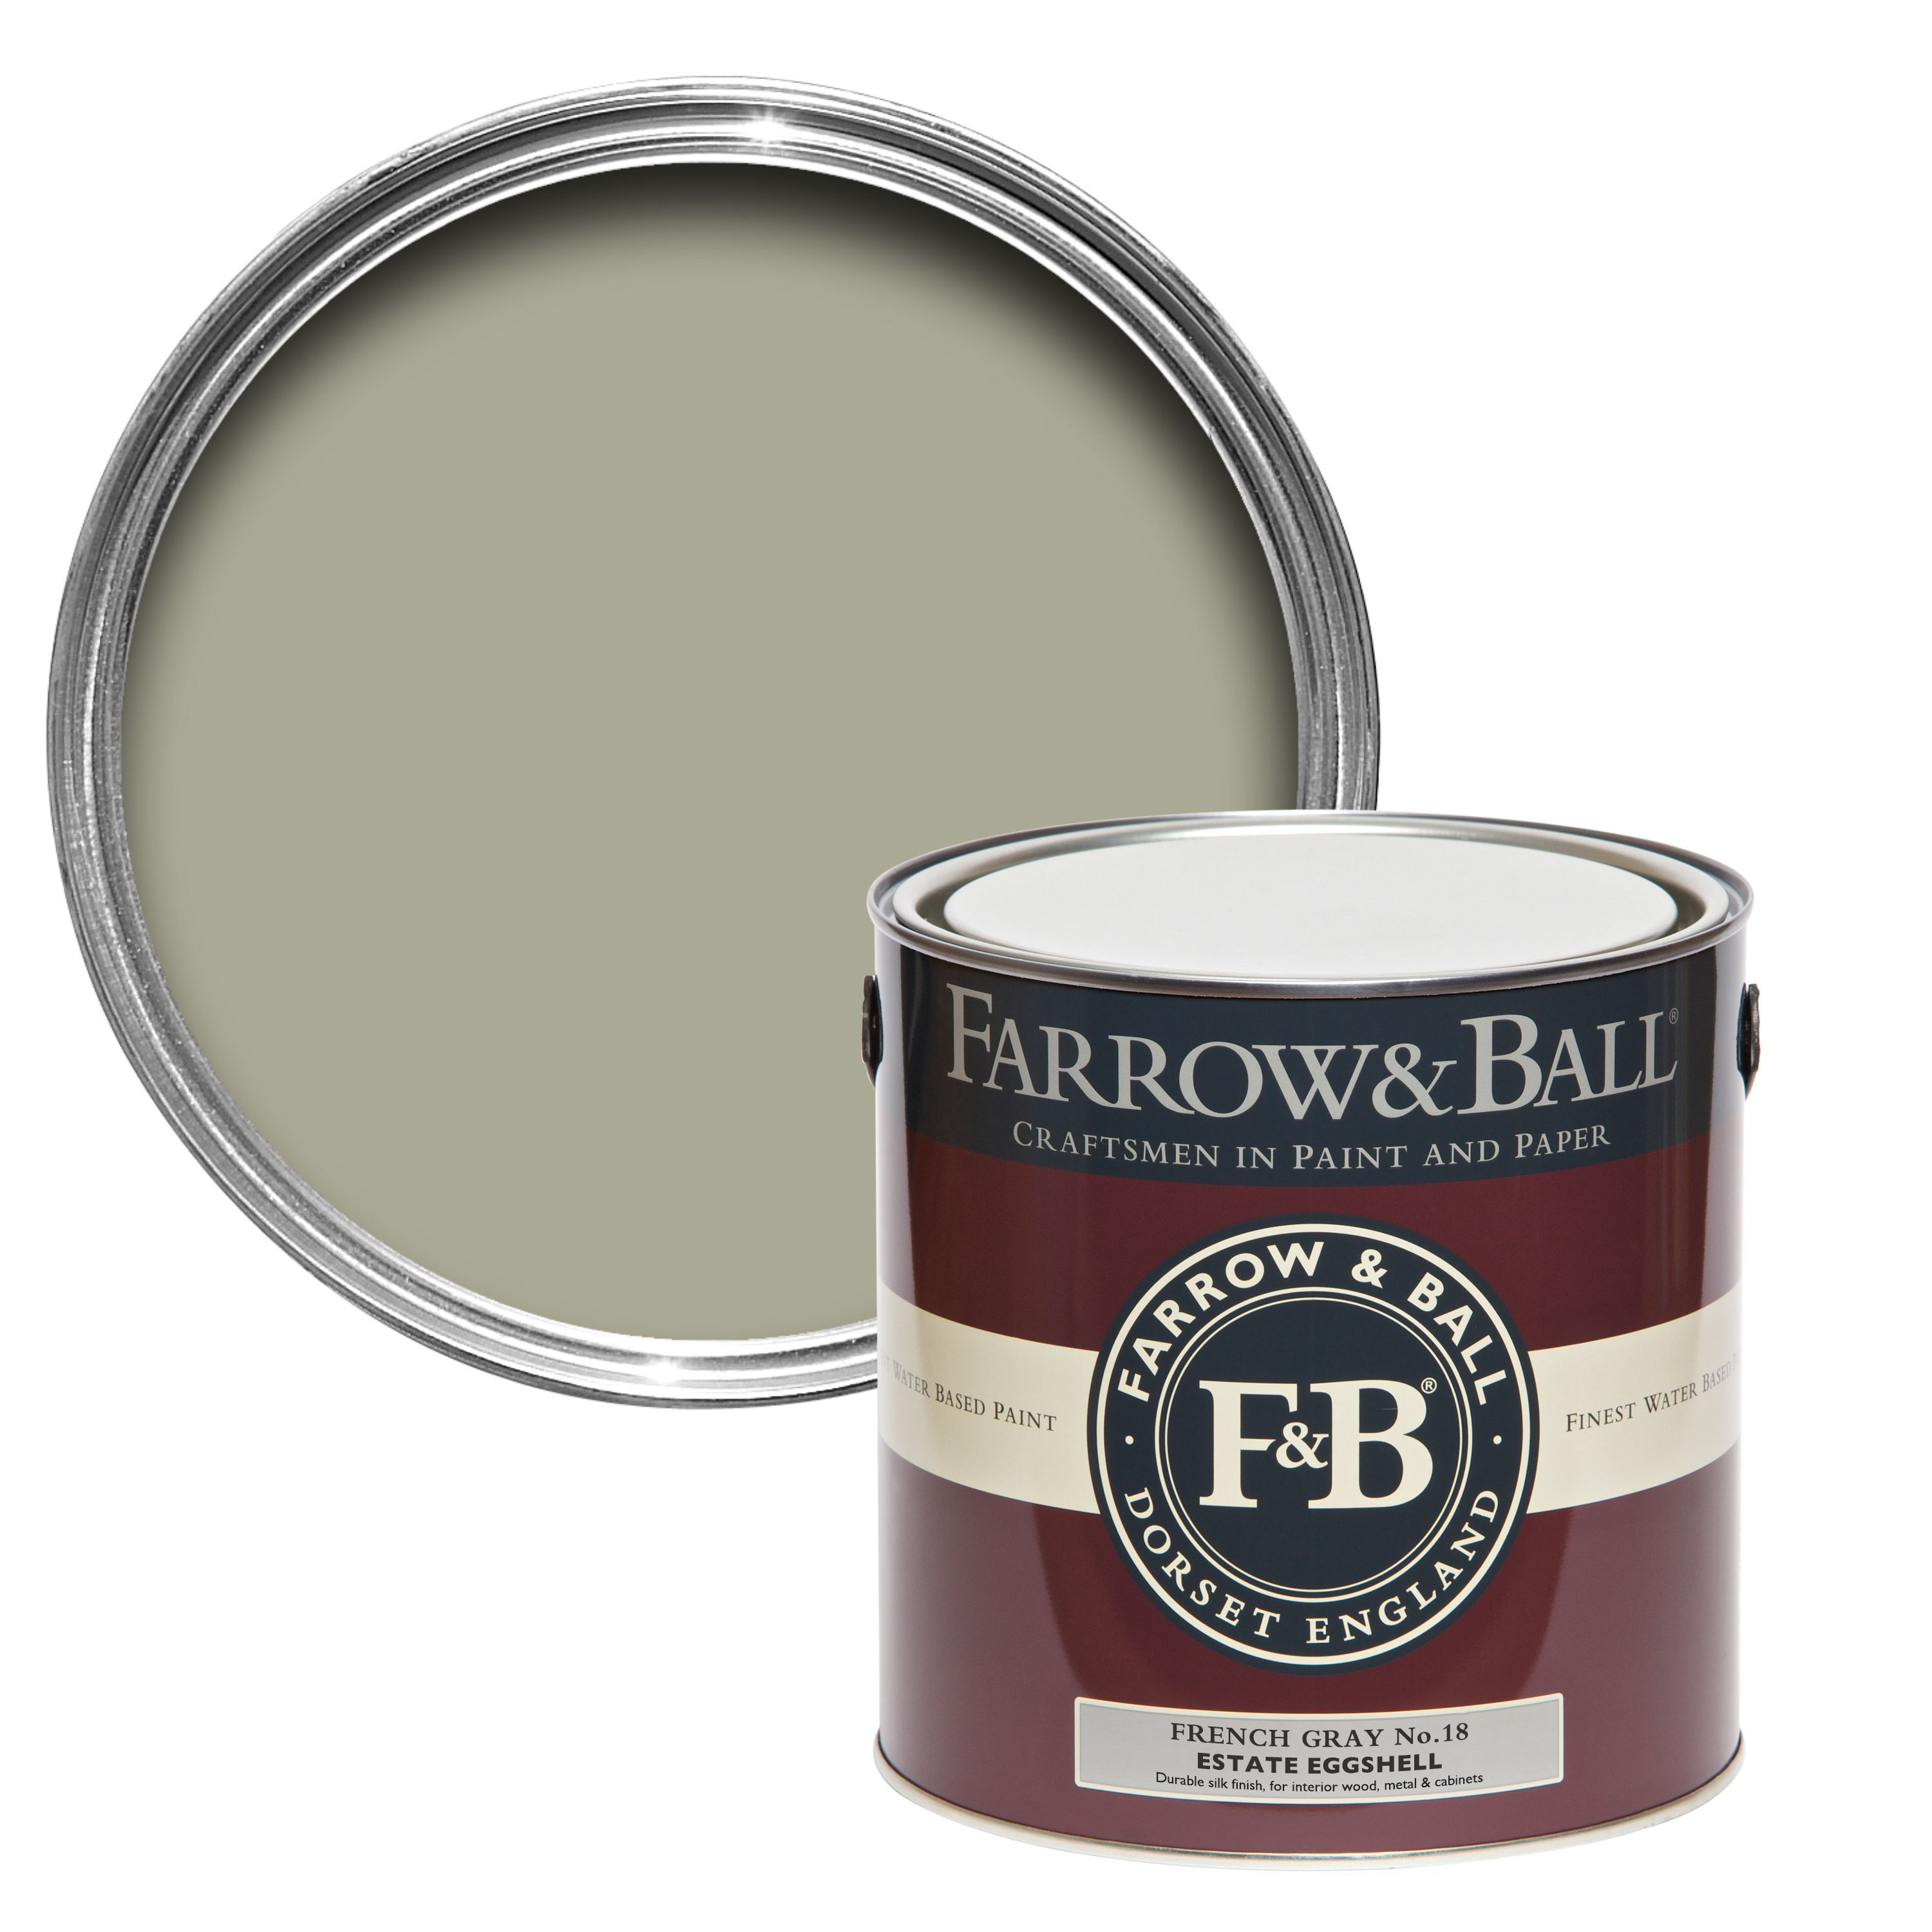 Farrow & Ball French gray no.18 Estate Eggshell